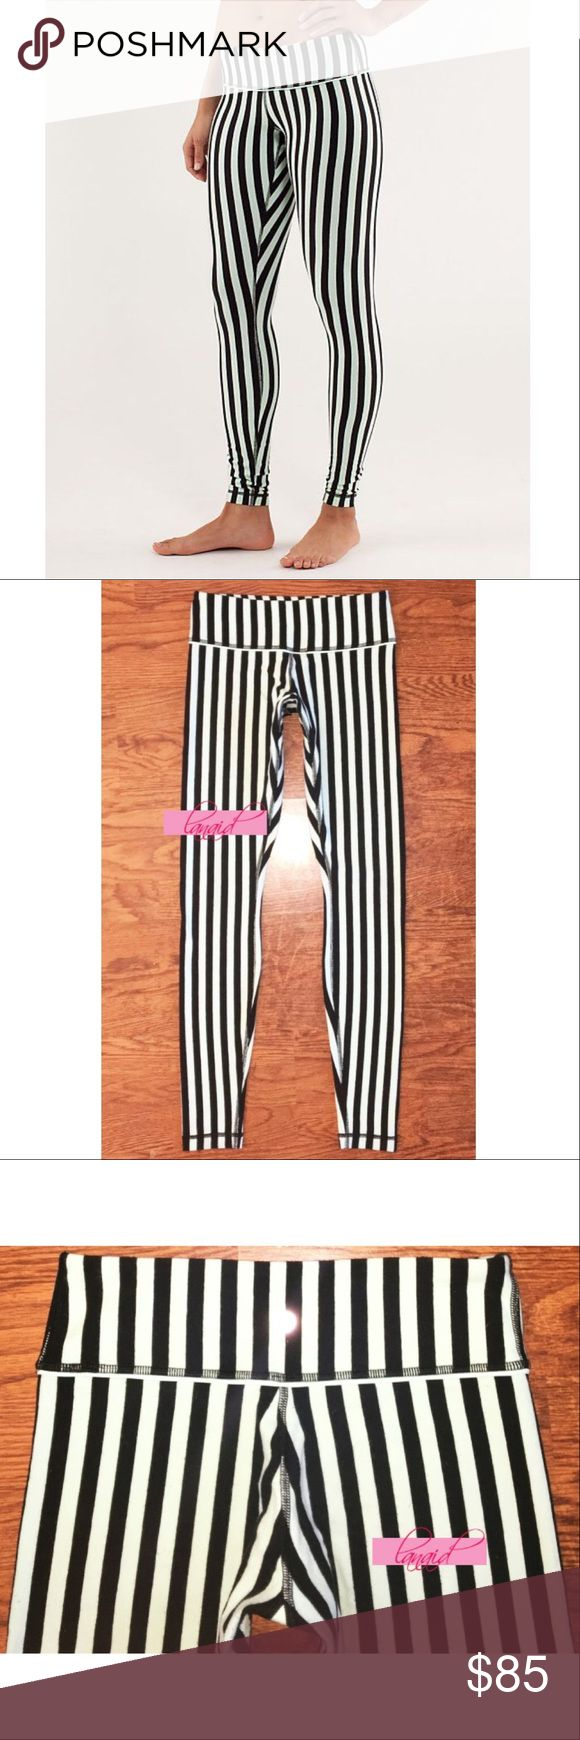 """Lululemon Wunder Under Sea Stripe Mint Vertical 6 📡PRICE IS FIRM AND NON-NEGOTIABLE. NO OFFERS. LOWBALLERS WILL BE BLOCKED. NO TRADES.📡 Lululemon """"Wunder Under"""" yoga pants in Sea Stripe Mint Moment/Black. Fabric blend is made up of a soft, organic stretch cotton and looks to have a """"brushed"""" appearance, which is intentional and not from use. Breathable, four-way stretch. Organic cotton Wunder Unders are not made with size dots, but these are a size 6. lululemon athletica Pants Skinny"""